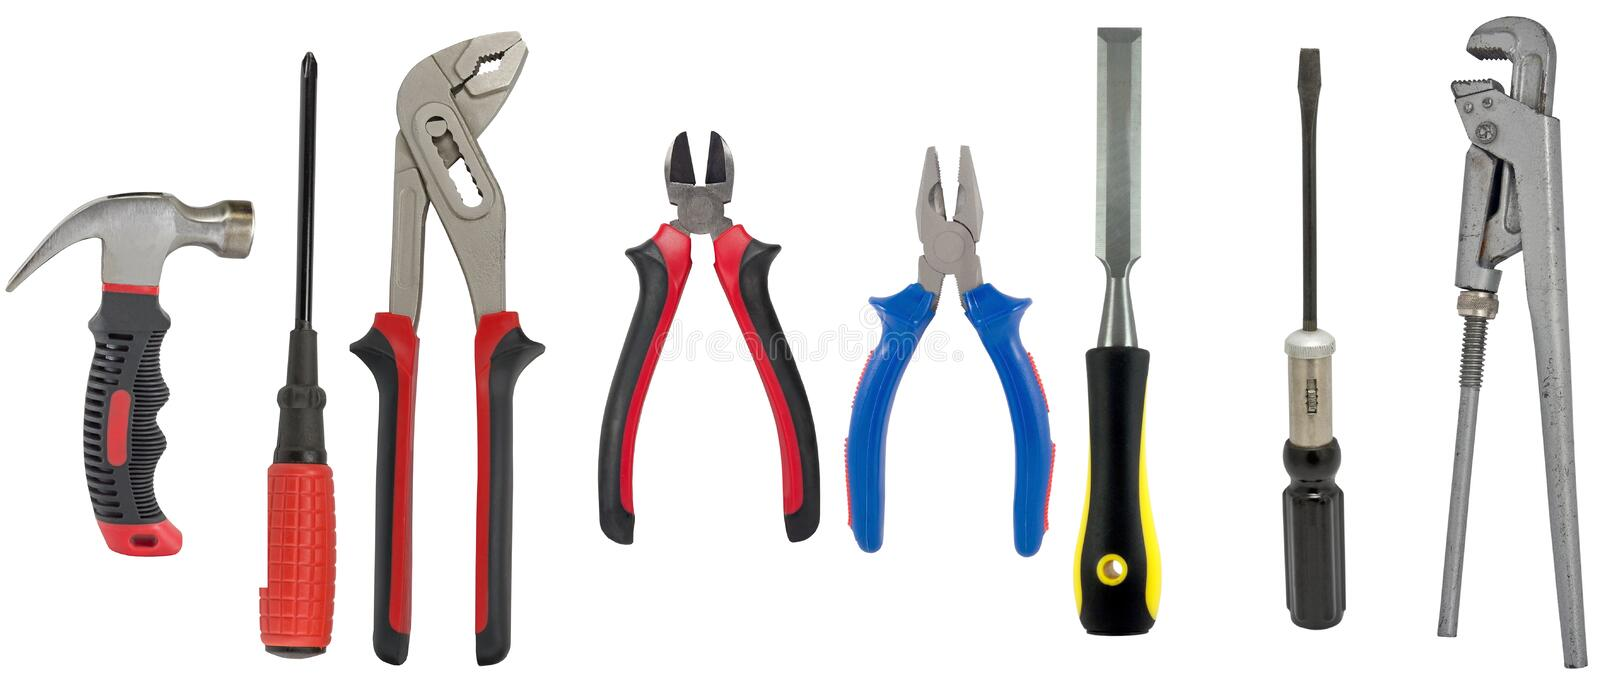 Electrician and plumber tools isolated white stock image